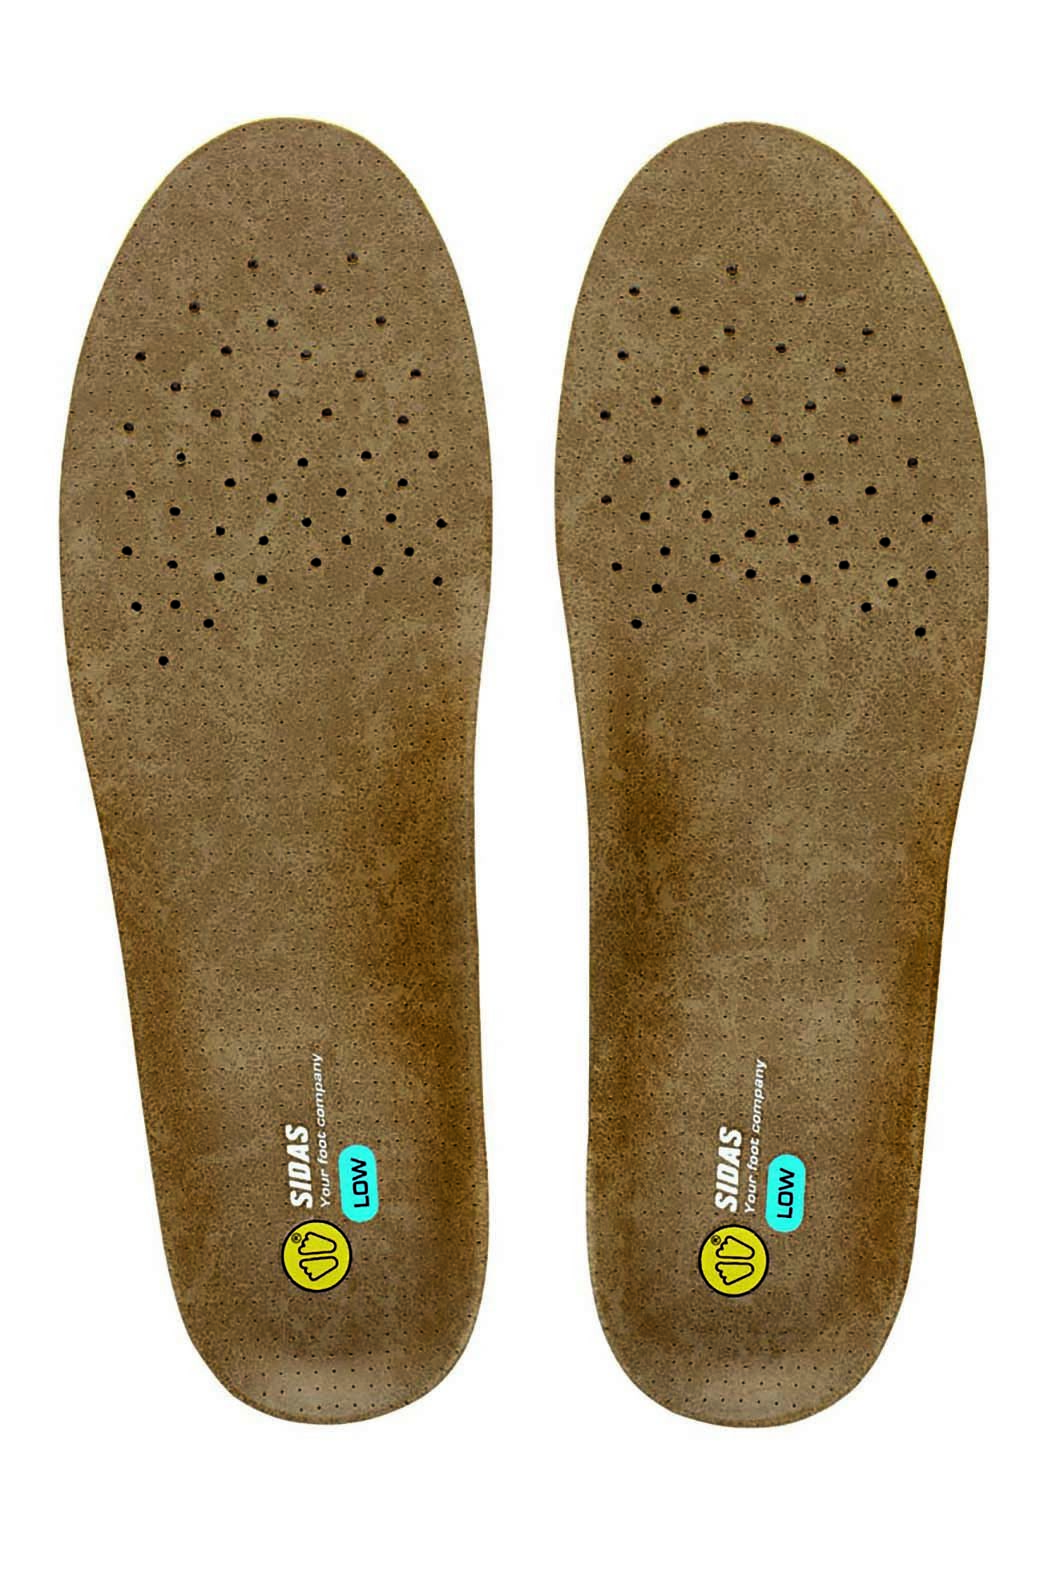 Sidas 3 Feet Outdoor Low Innersole, Brown, hi-res